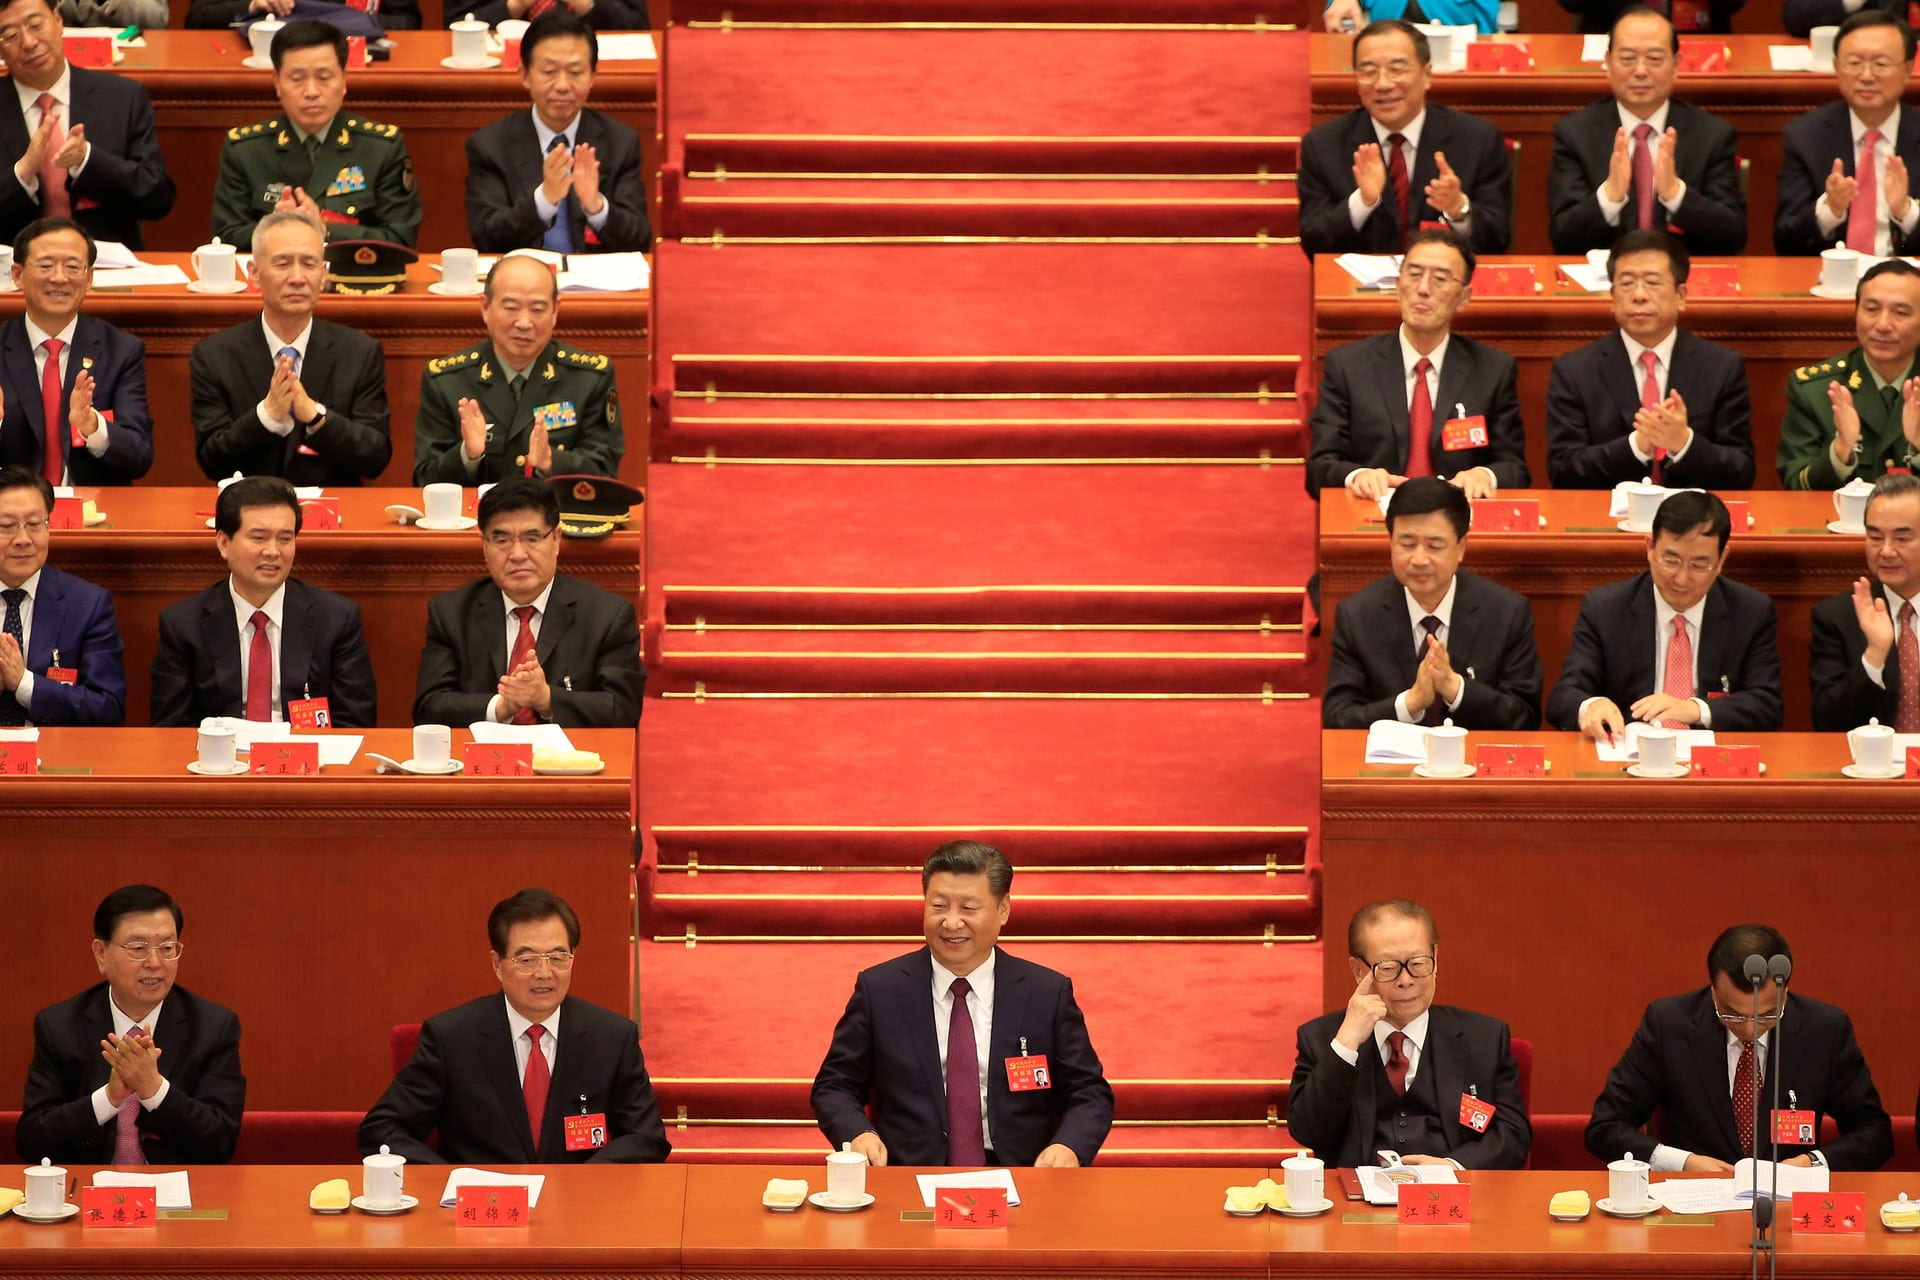 (Front row, L to R) The chairman of the standing committee of the National People's Congress Zhang Dejiang, former Chinese president Hu Jintao, Chinese president Xi Jinping, former president Jiang Zemin and Chinese premier Li Keqiang, at the opening ceremony (Photo courtesy: Aly Song/Reuters)